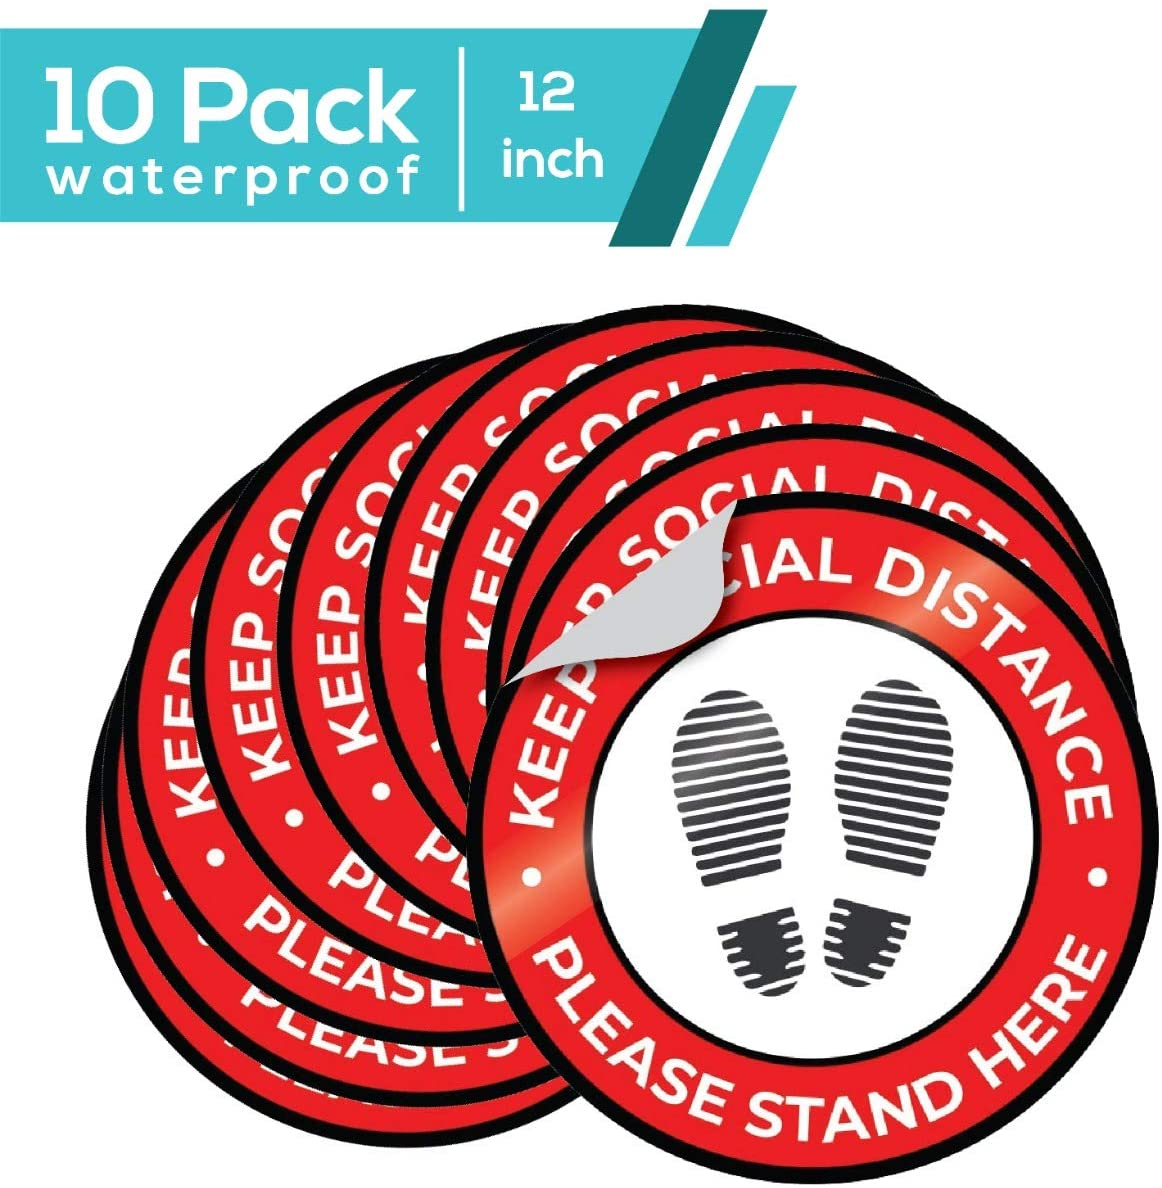 Social Distance Floor Stickers – 12 Inch Floor Stickers - Social Distancing Sign – Social Distancing Floor Stickers – Easy DIY Application – Anti-Slip Surface – Ideal for Public Spaces, Buildings